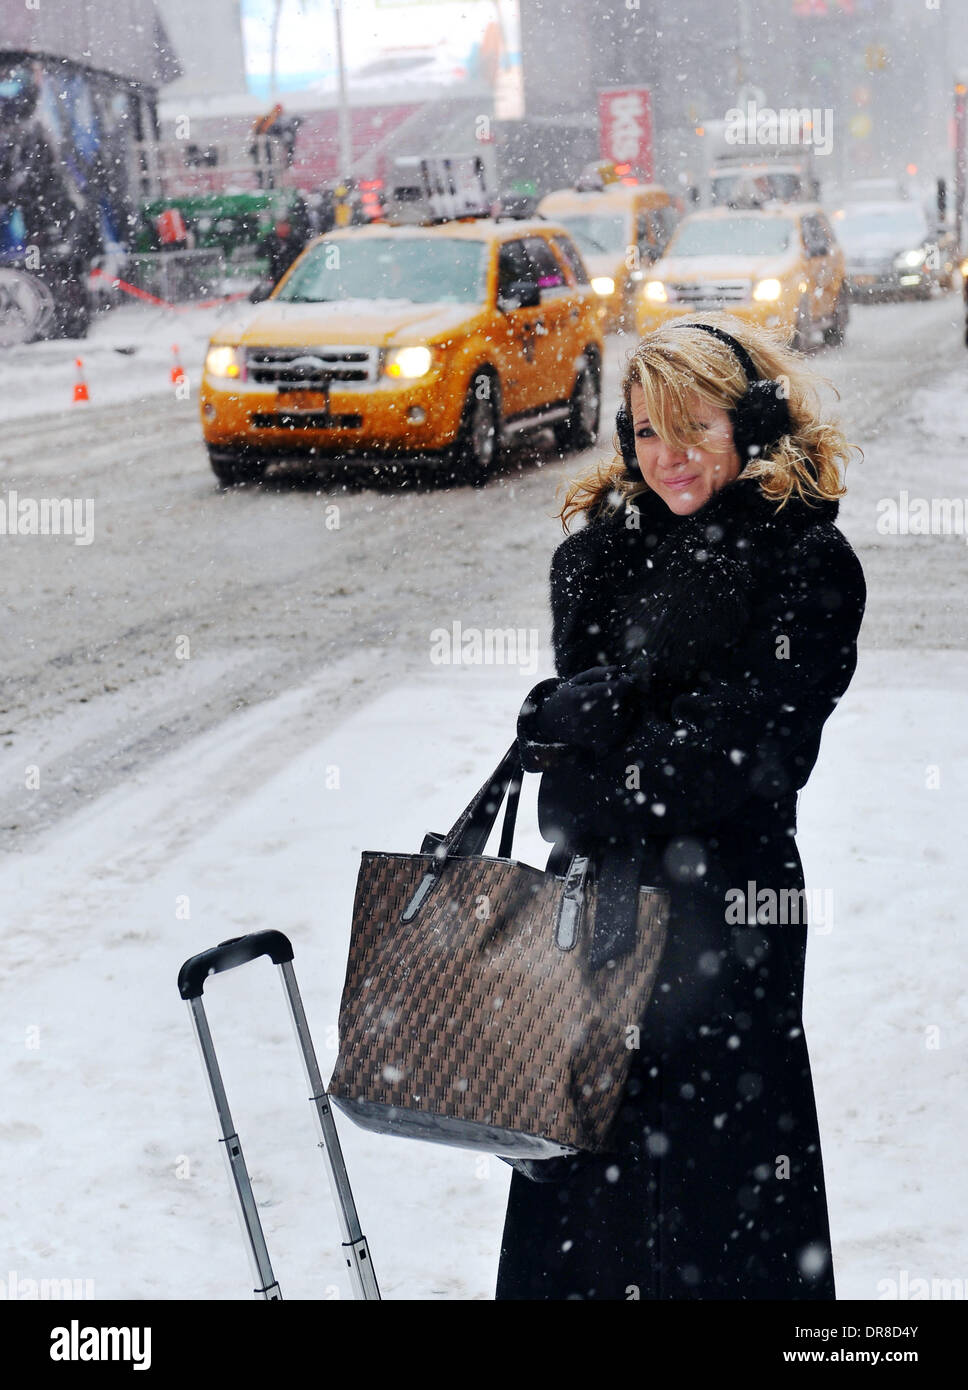 New York, NY, USA. 21st Jan, 2014. A pedestrian waits in snowstorm for signal to pass a street near the Times Square Stock Photo